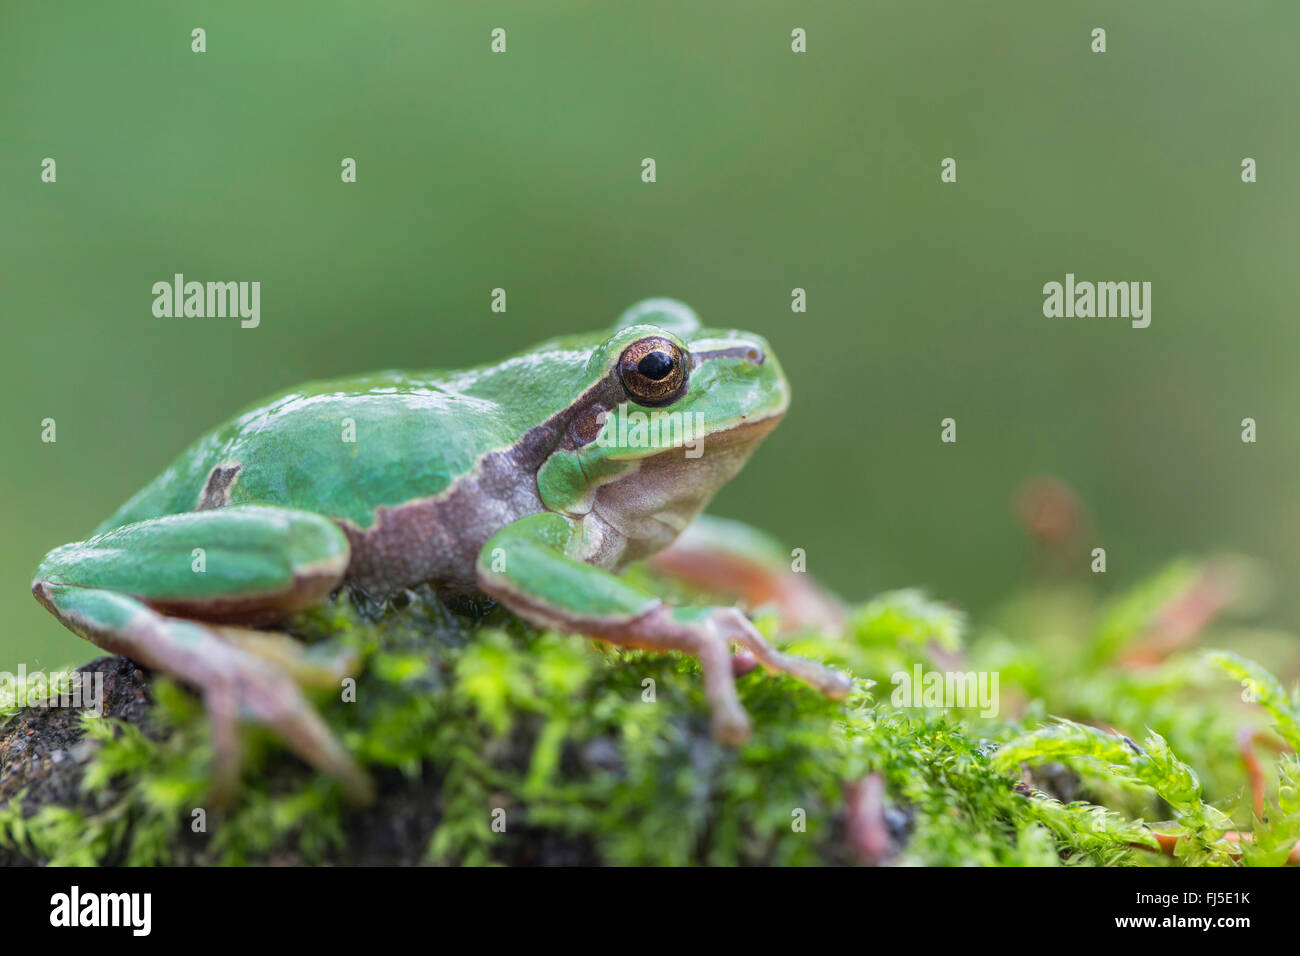 European treefrog, common treefrog, Central European treefrog (Hyla arborea), sitting on a moss cushion, side view, - Stock Image